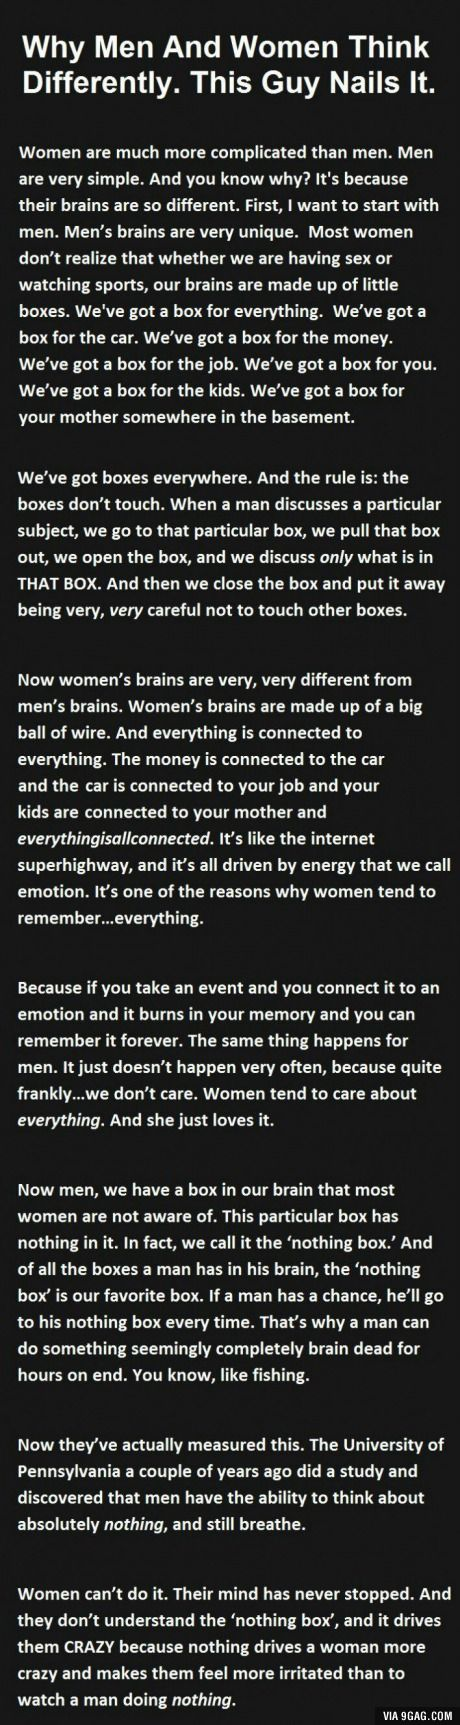 Why men and women think differently. This guy nailed it!